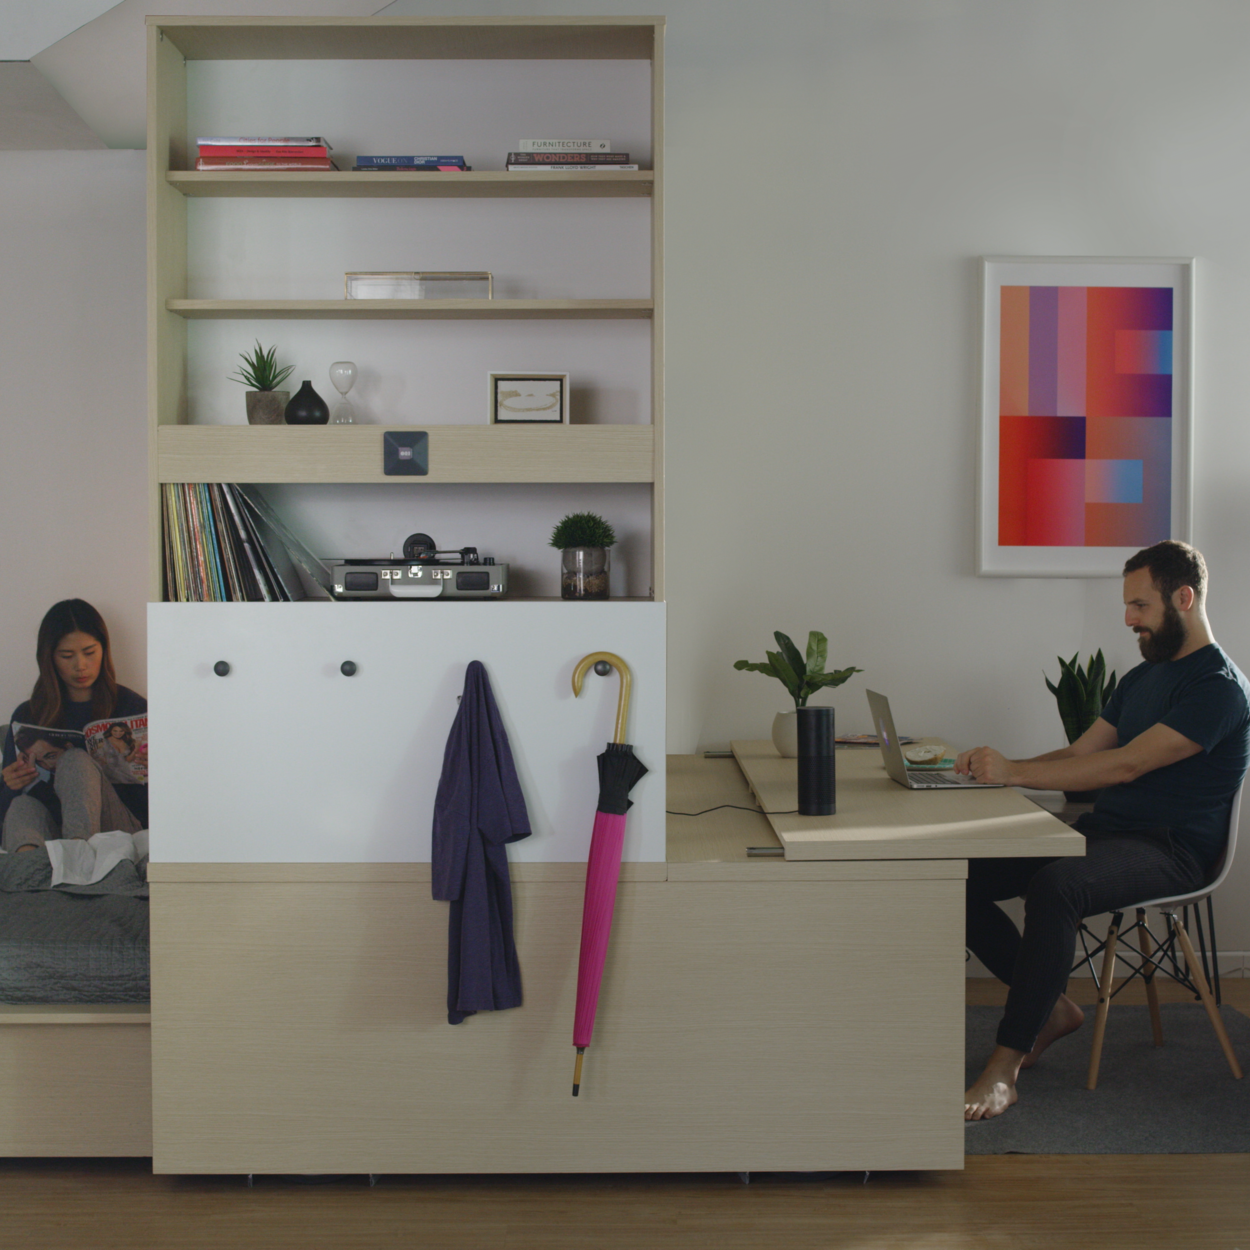 Ori Studio Suite - The Ori Studio Suite simulates the functionality of multiple rooms in a single, small, efficient space.